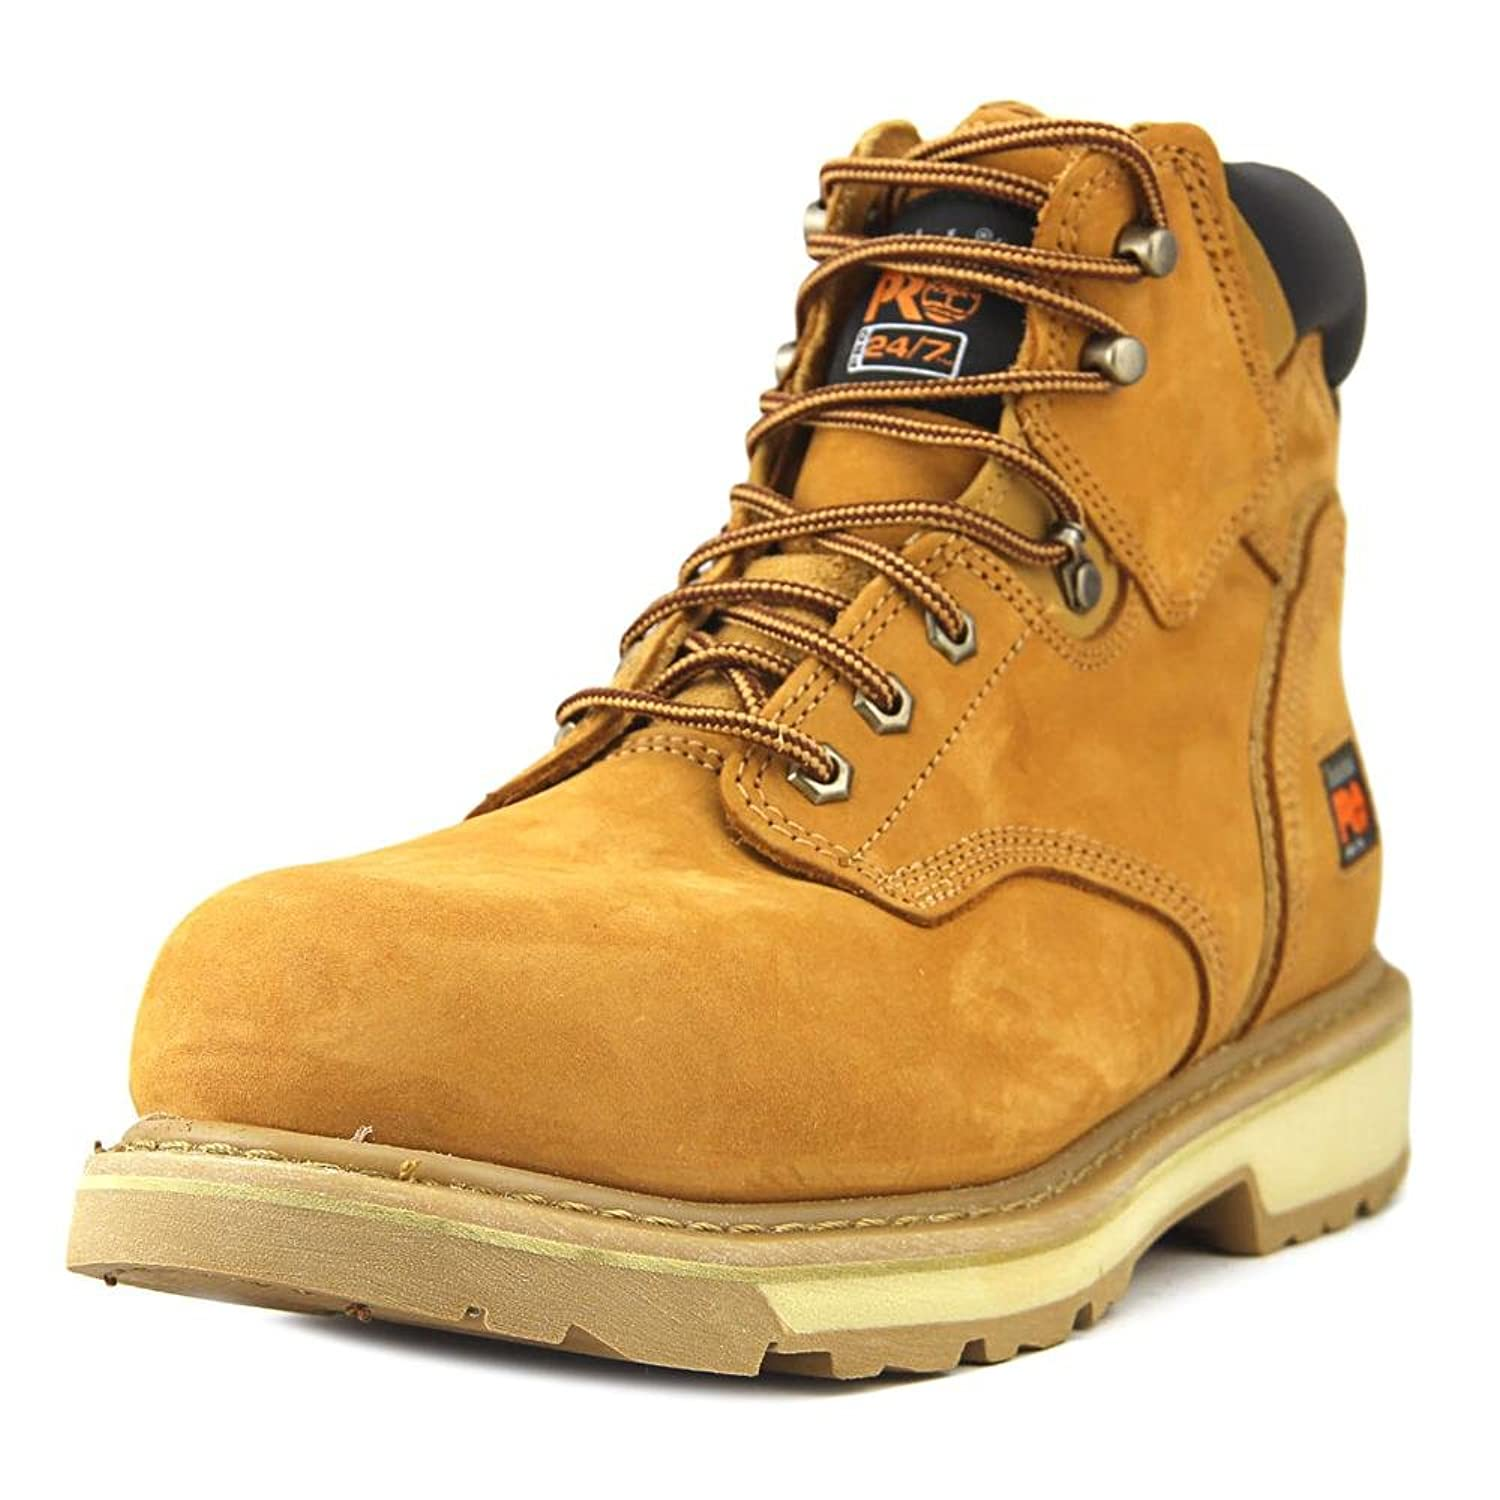 Timberland Pro Series Opinión Pit Boss zTnoP